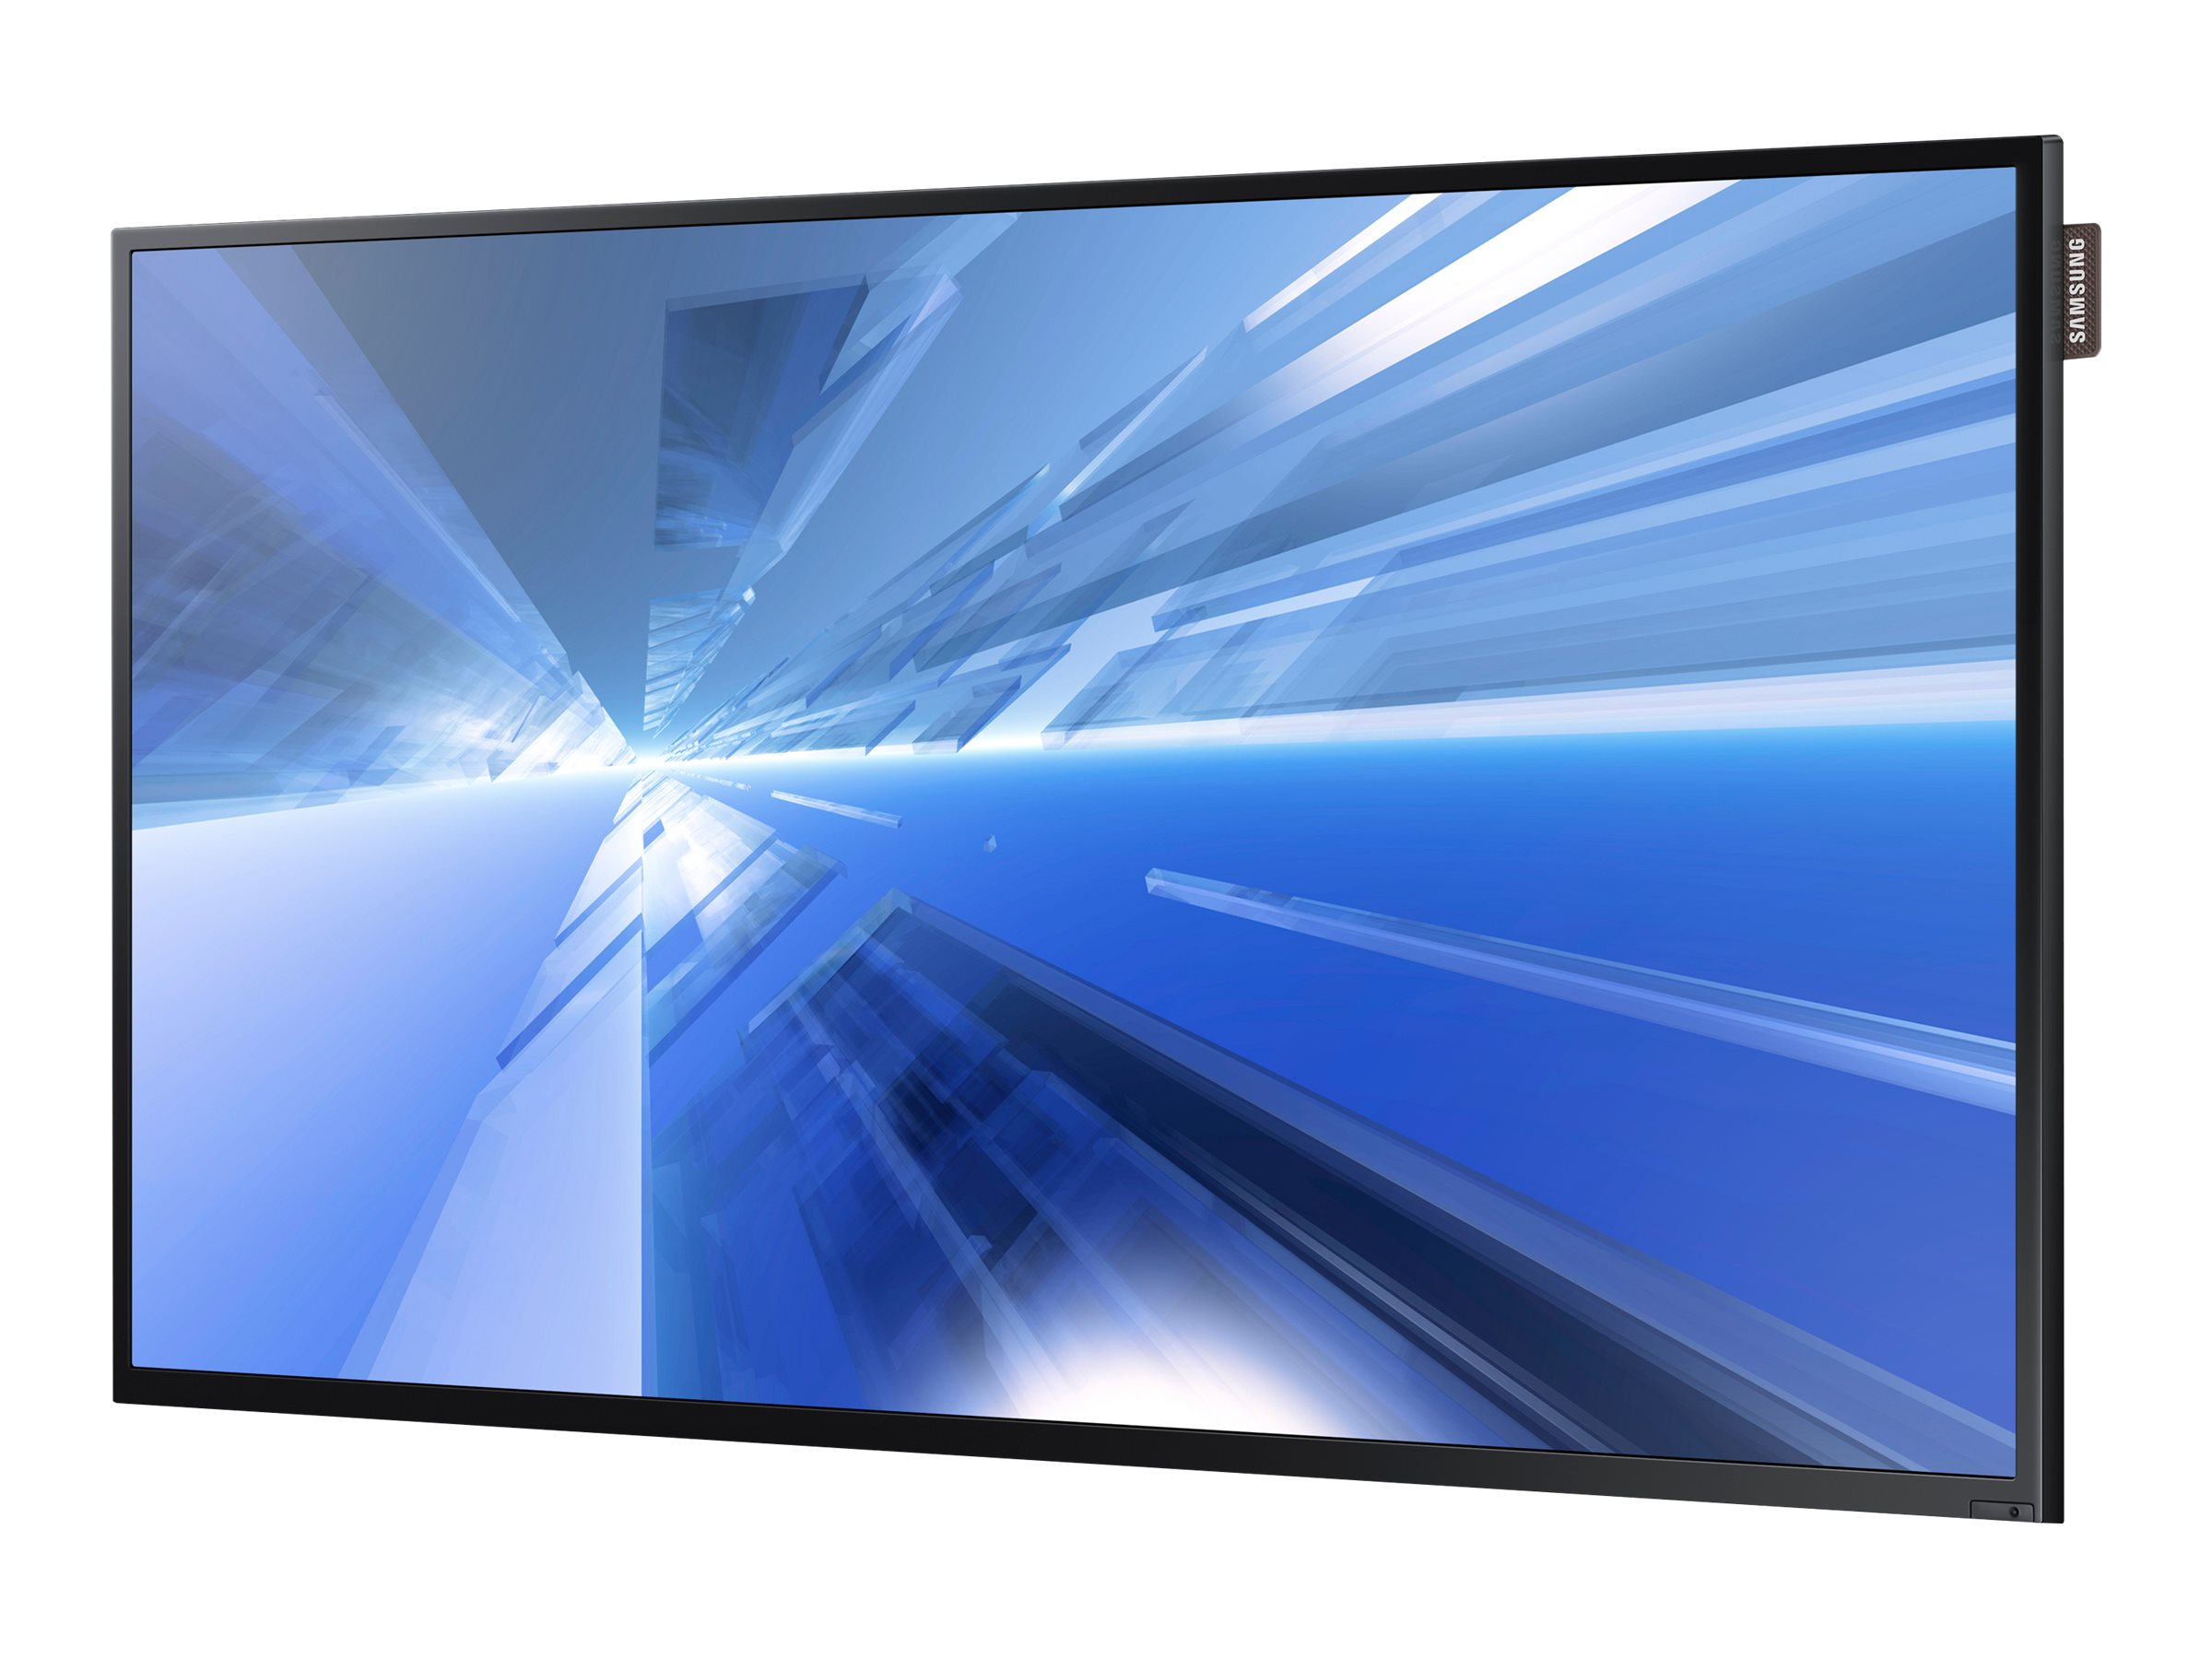 Samsung 32 DC32E Full HD LED-LCD Display, Black, DC32E